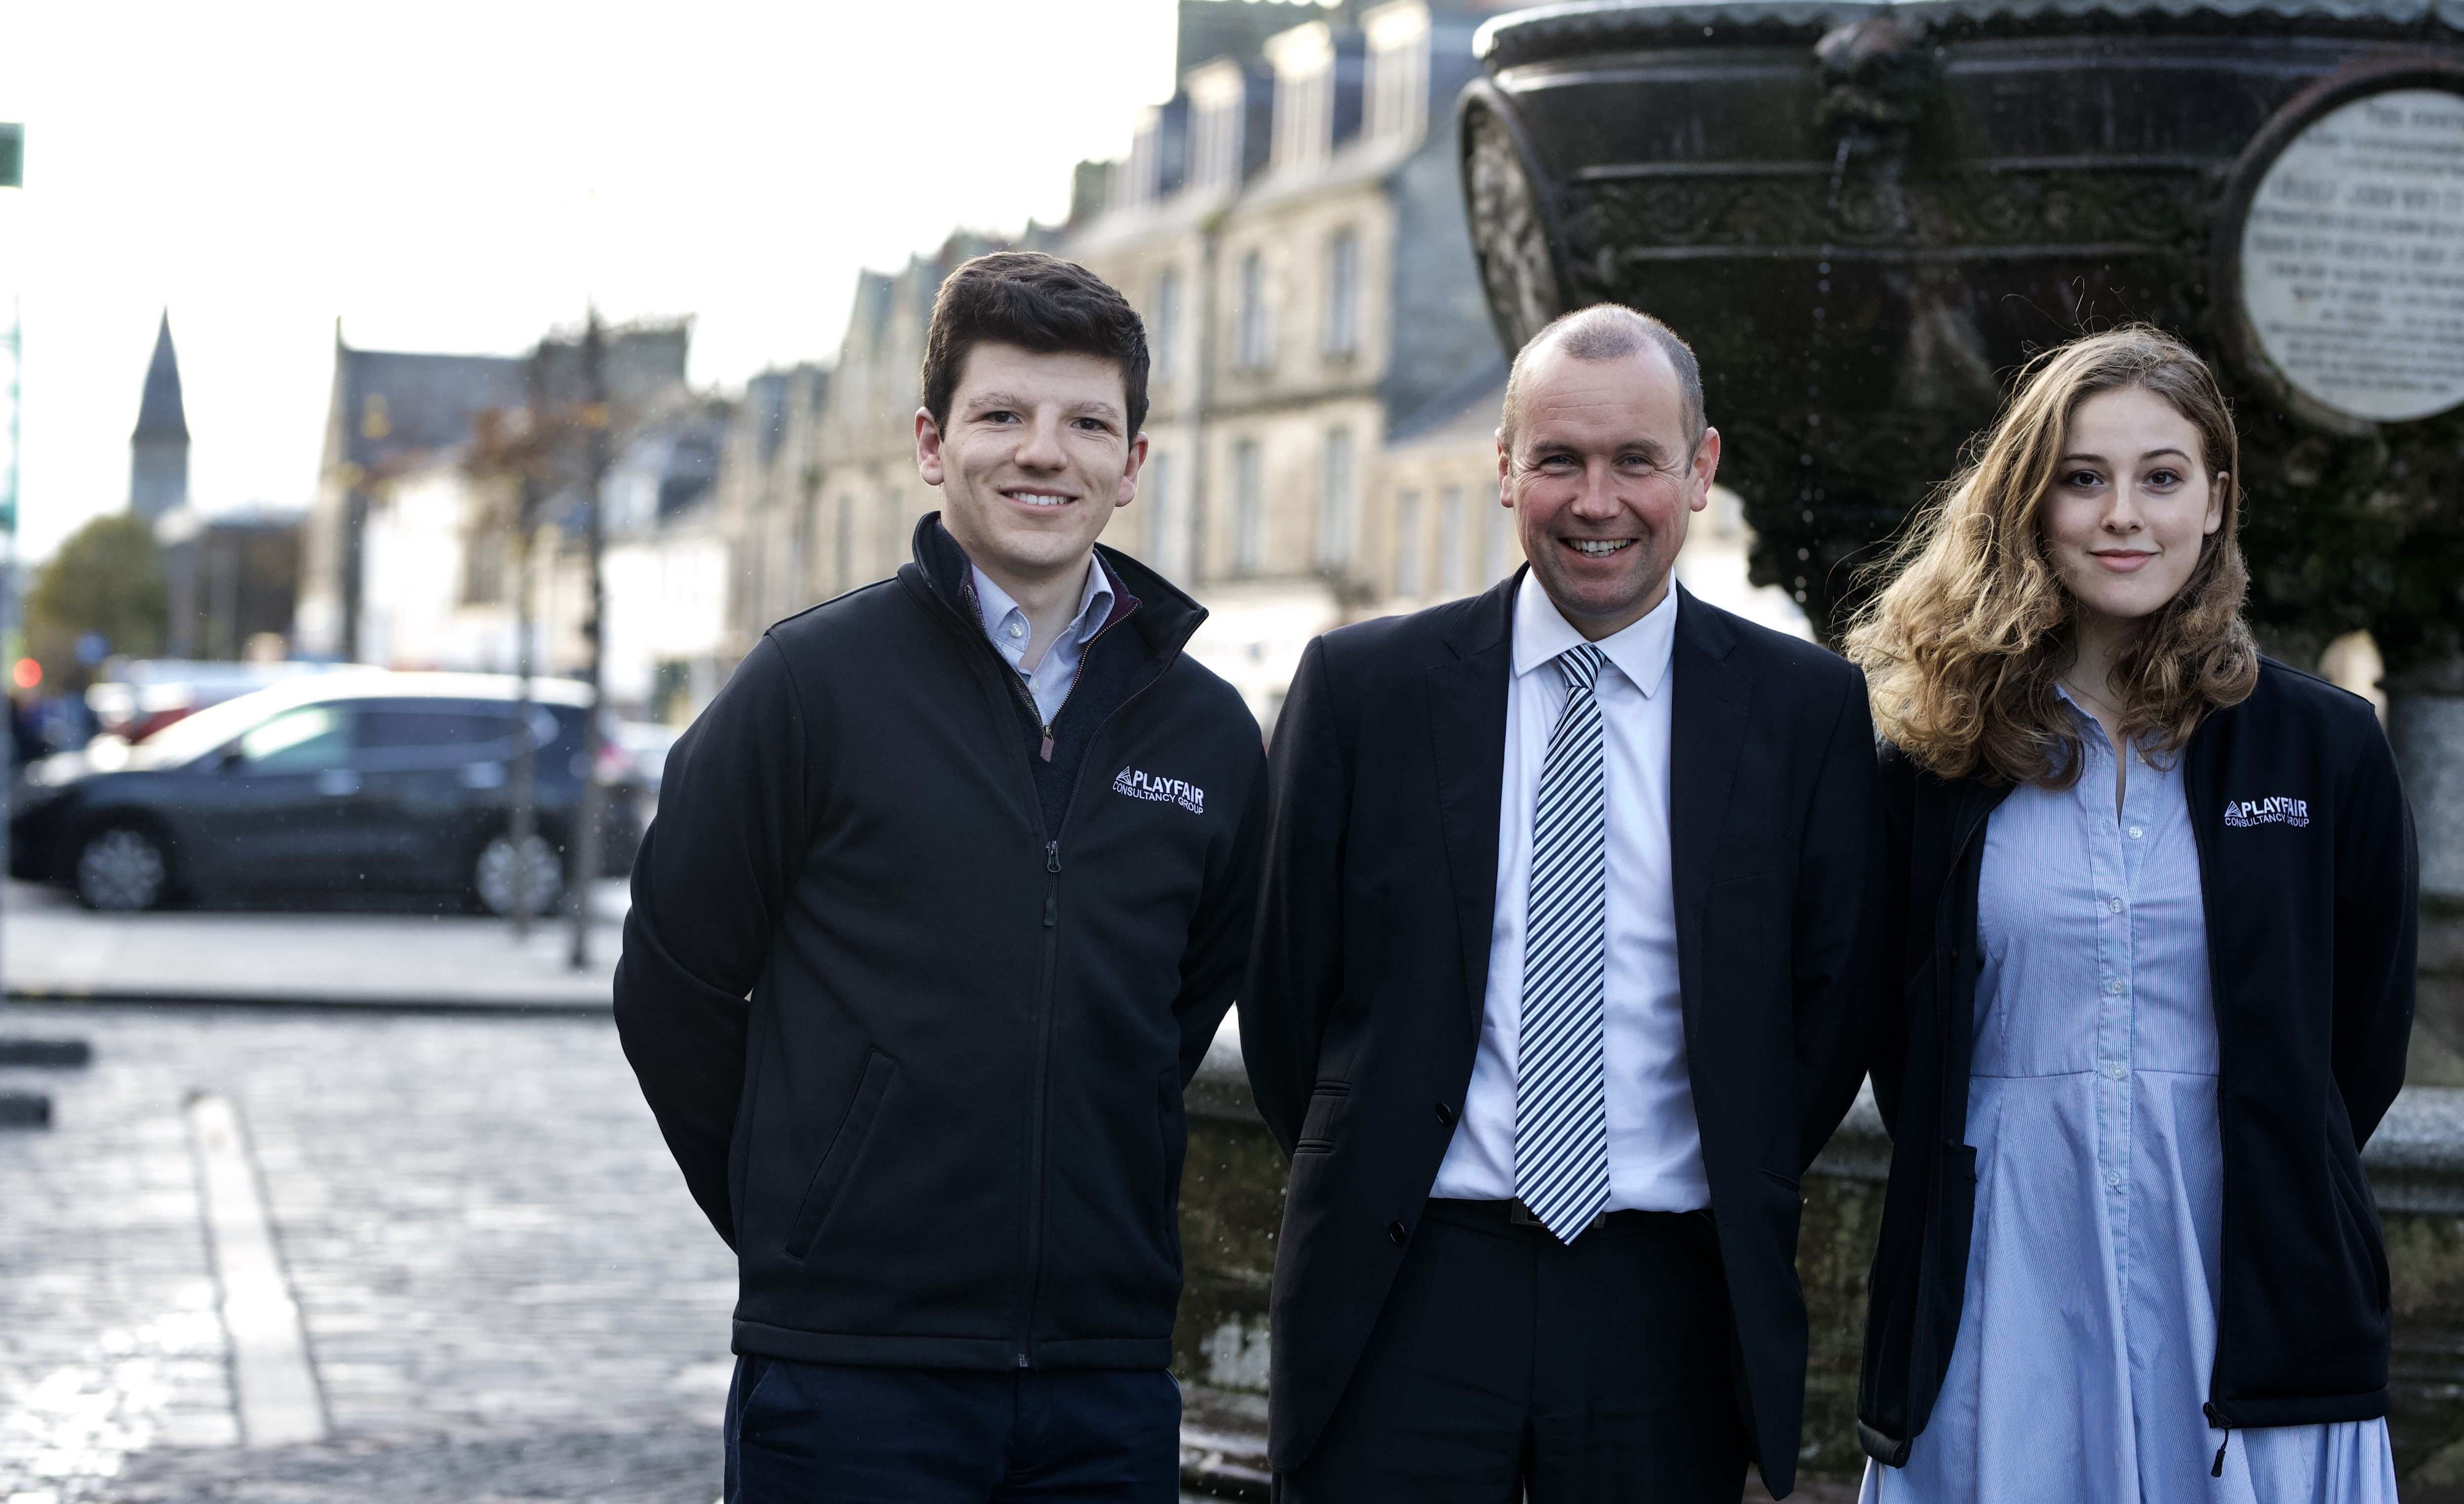 Brian Thomson (centre) with Frazer Towers and Rose Meier from Playfair Consultancy Group